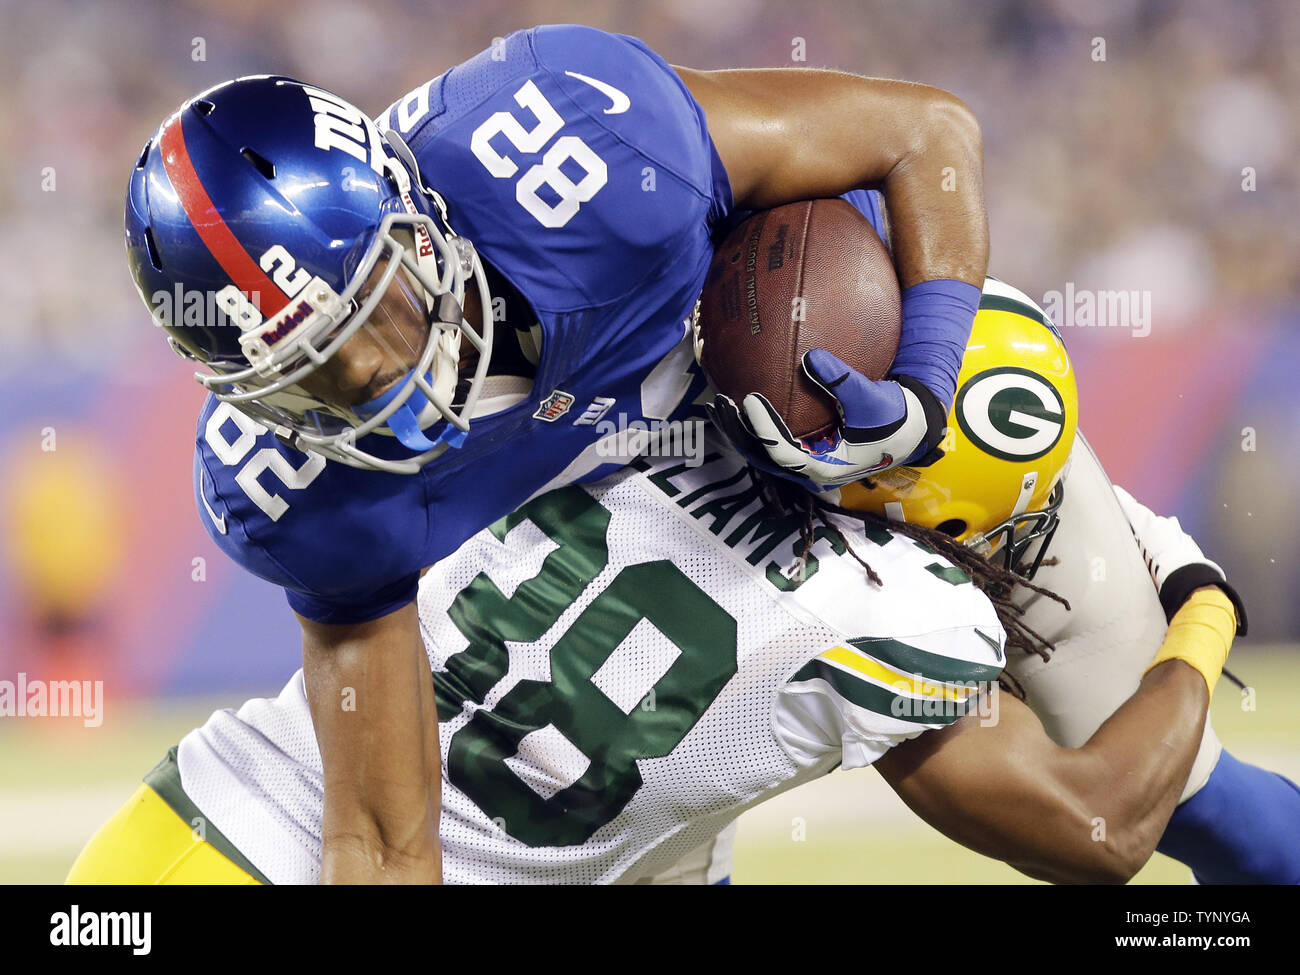 new product 5320b a0052 Green Bay Packers Tramon Williams tackles New York Giants ...